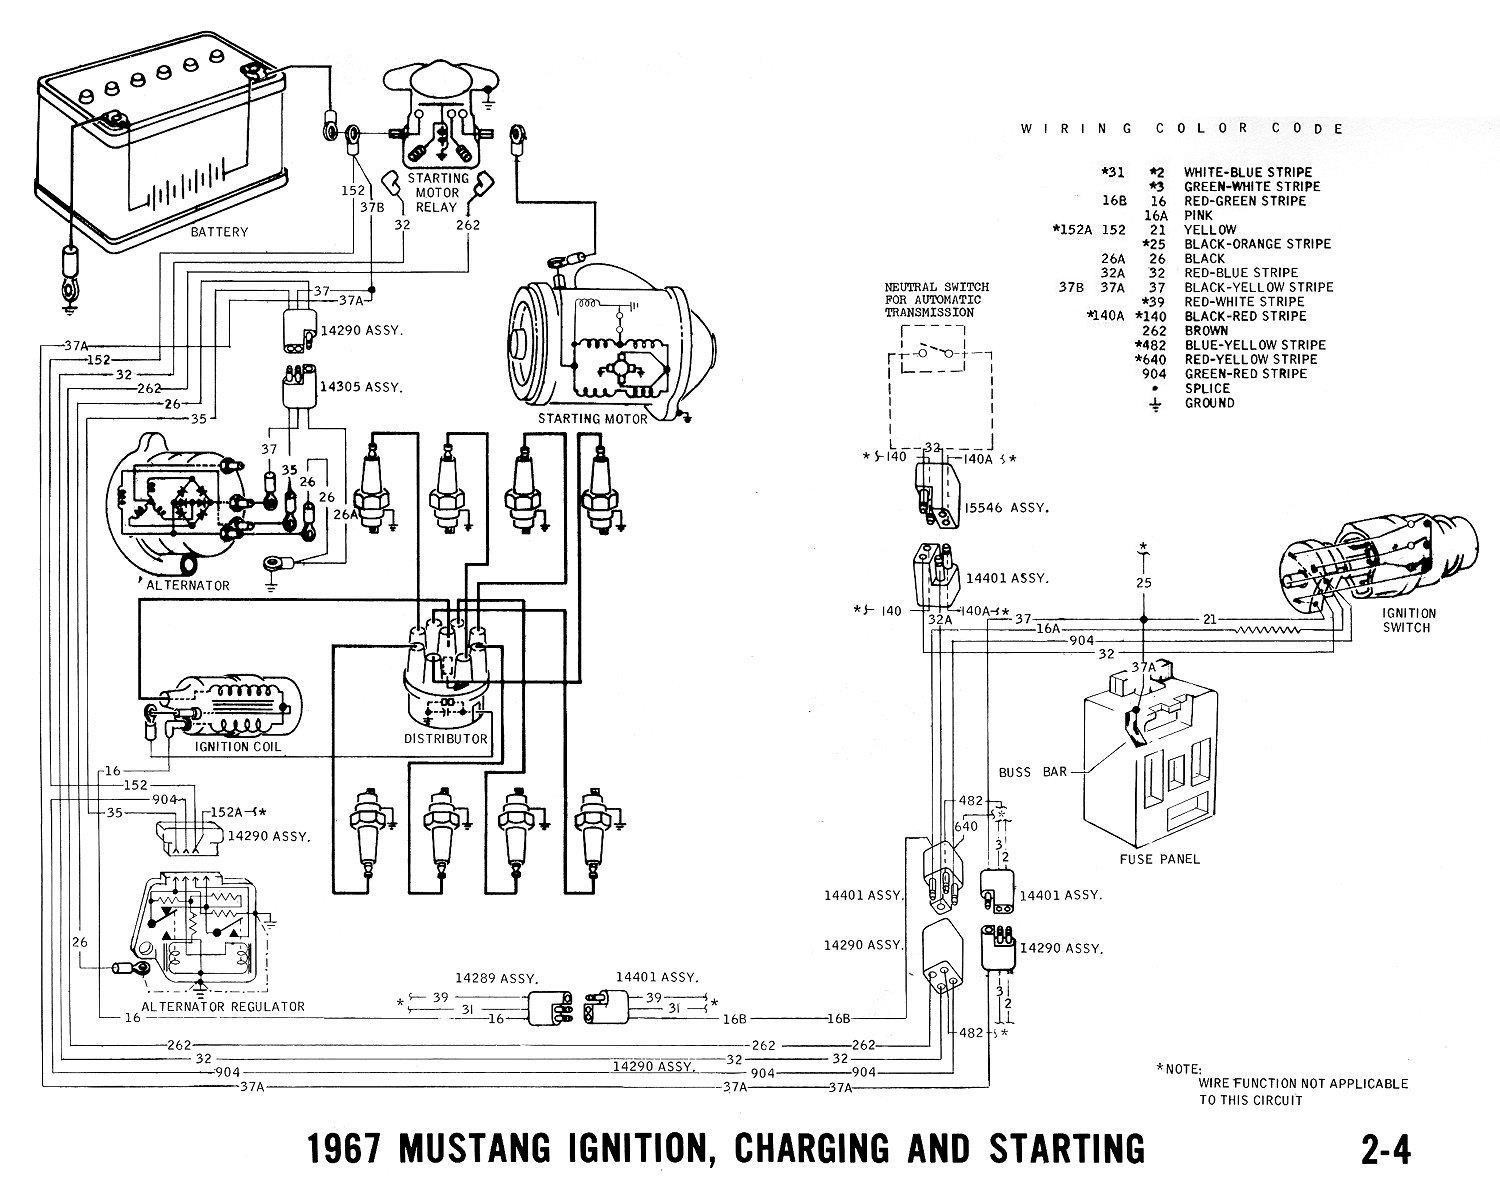 Mustang Wiring And Vacuum Diagrams On Cd 19651973 - Wiring Diagram